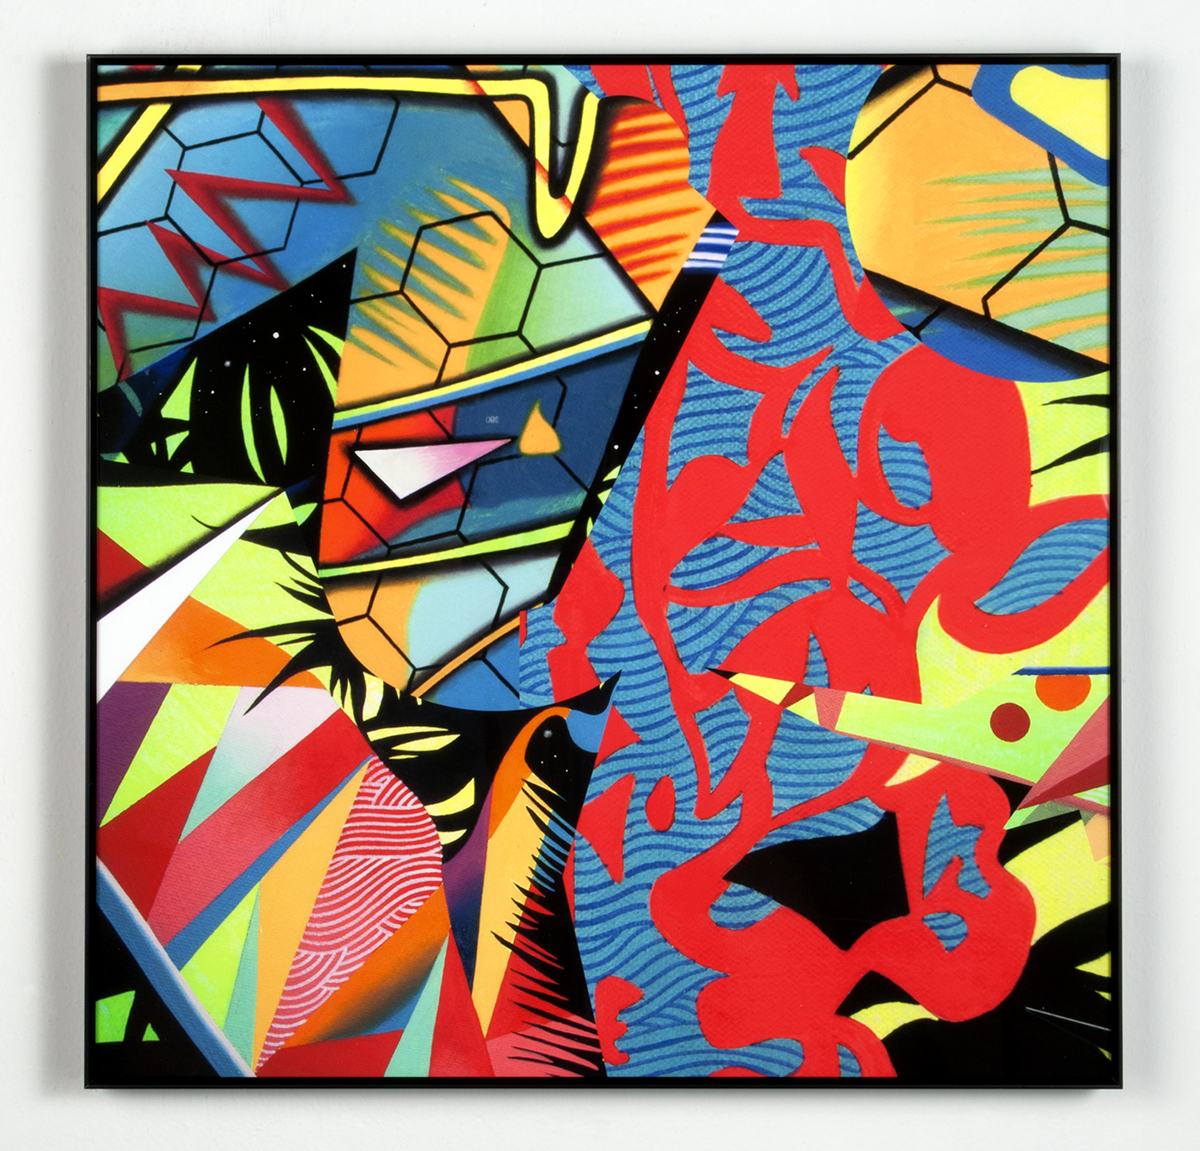 Rappstraction II Remix     2014    Hand-colored archival print w/ gouache & acrylic on paper    12 x12 in. framed